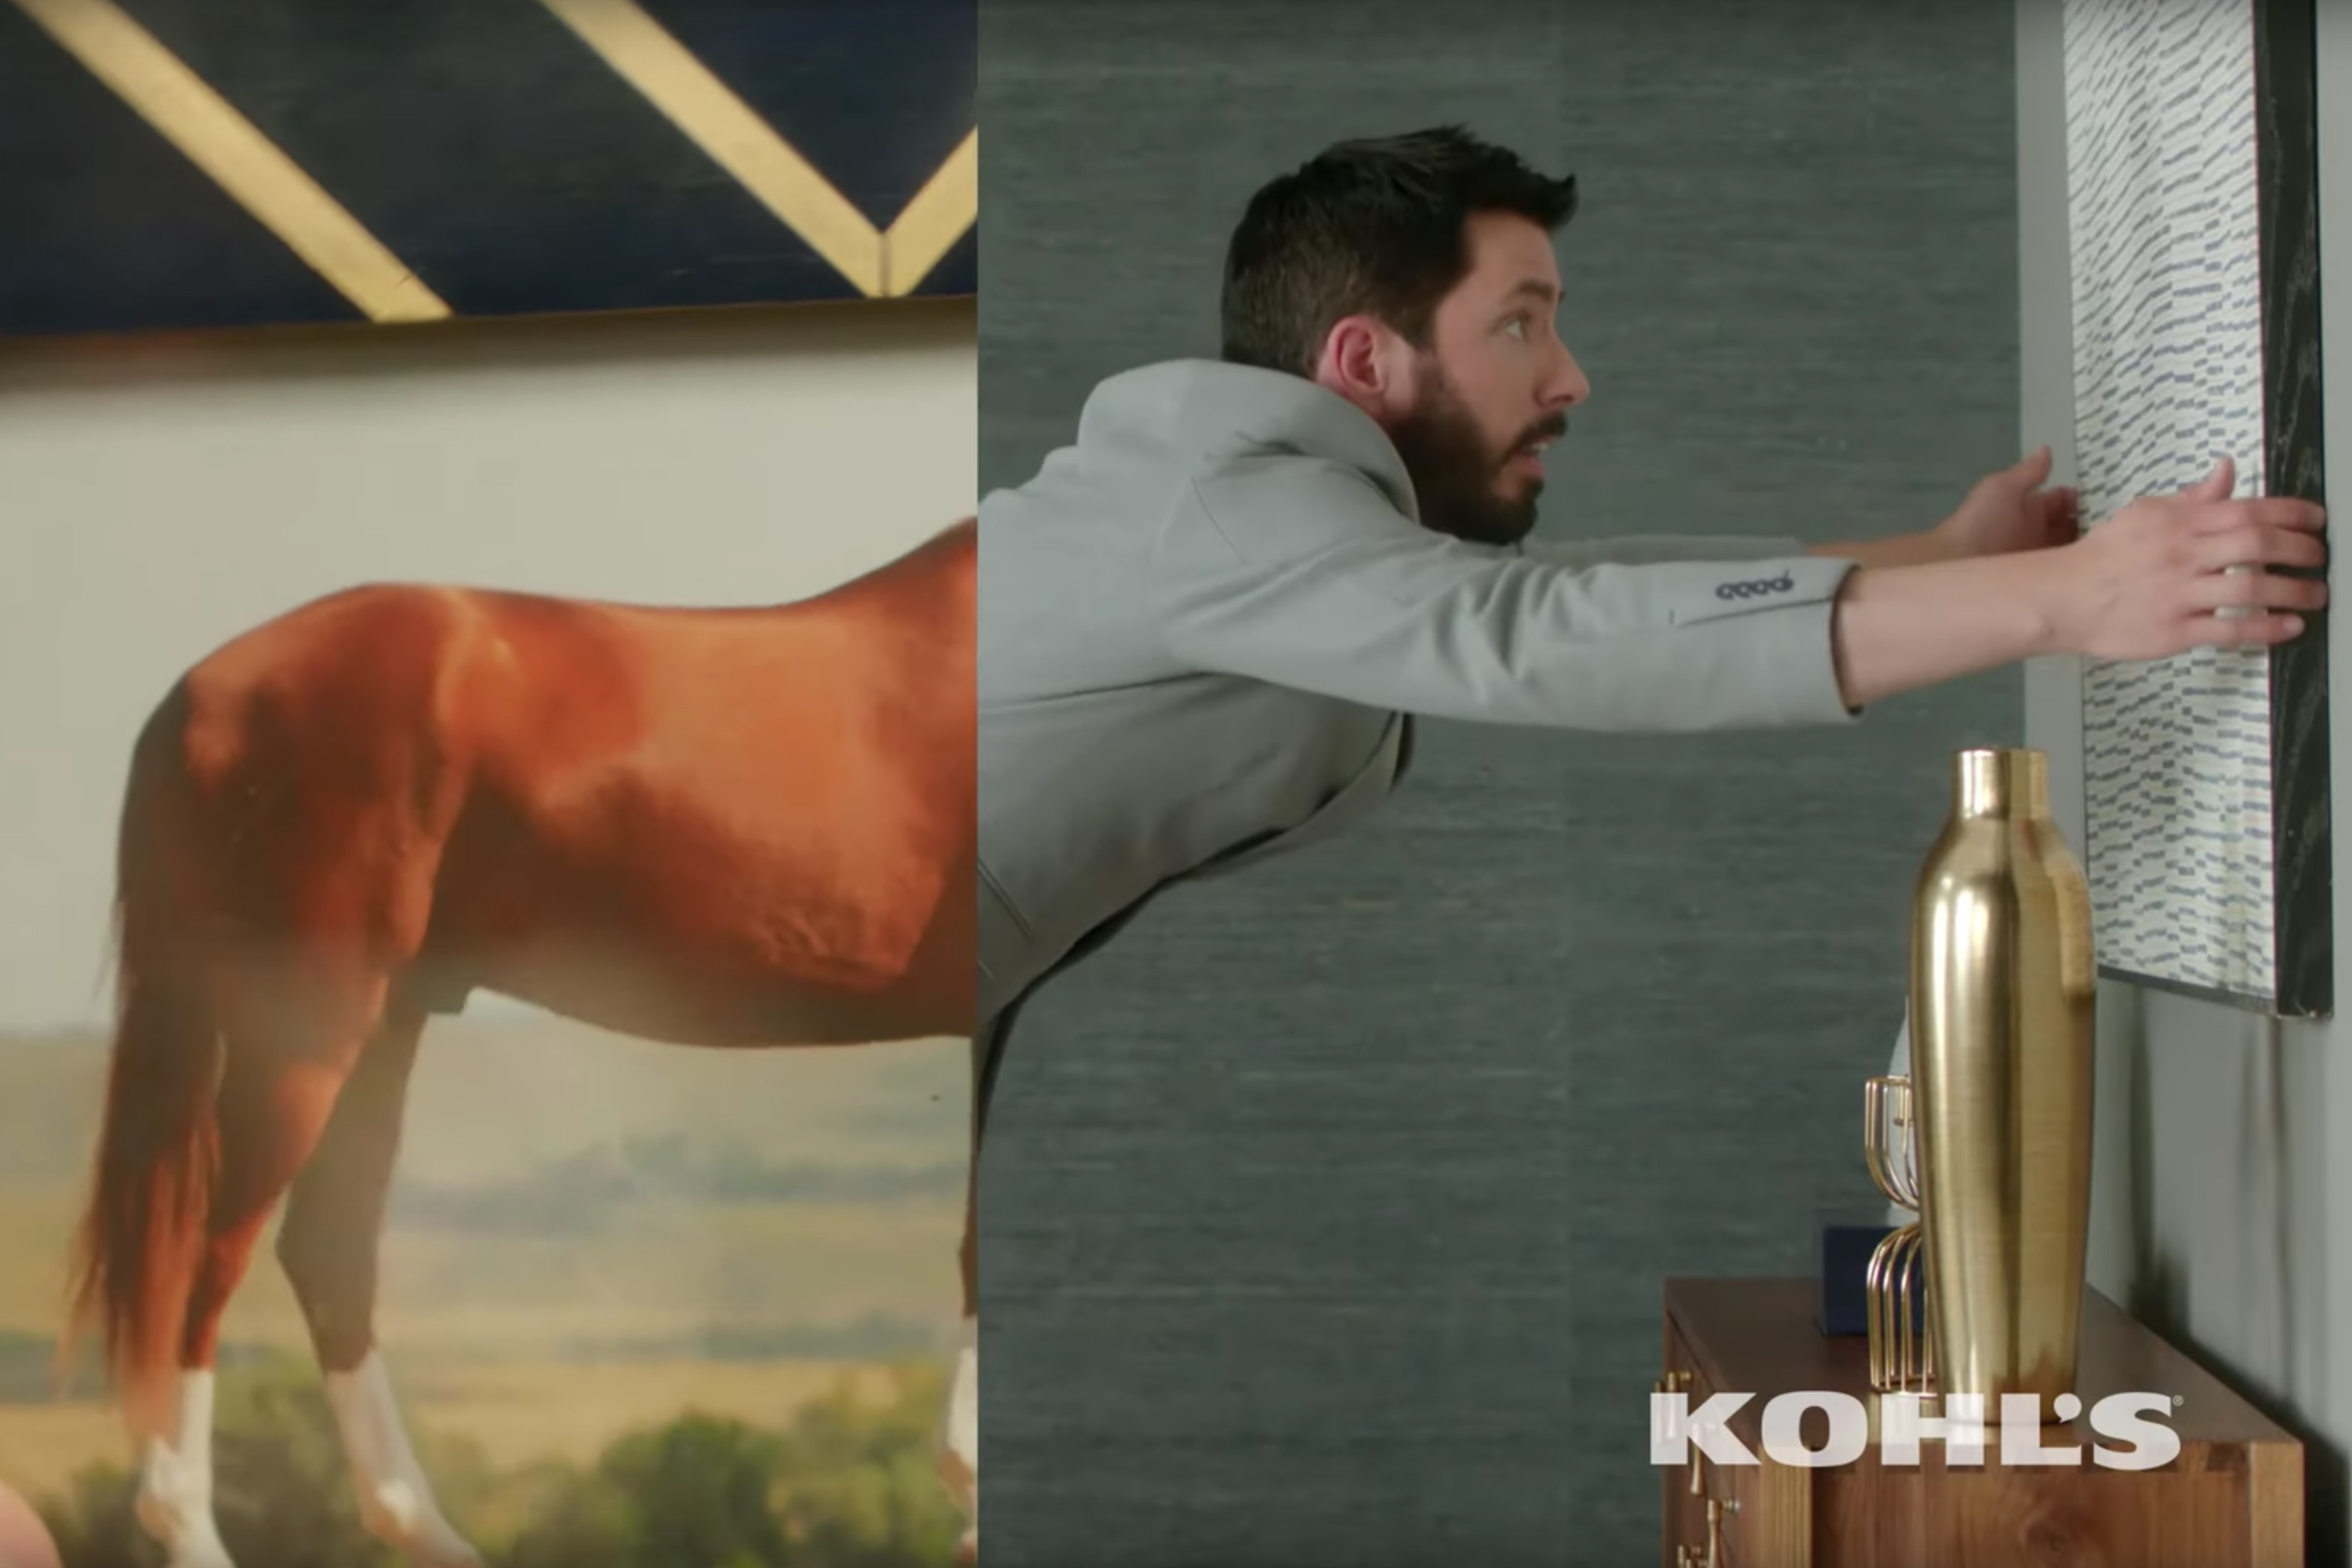 Watch the newest commercials on TV from Kohl's, Truebill, Thinx and more